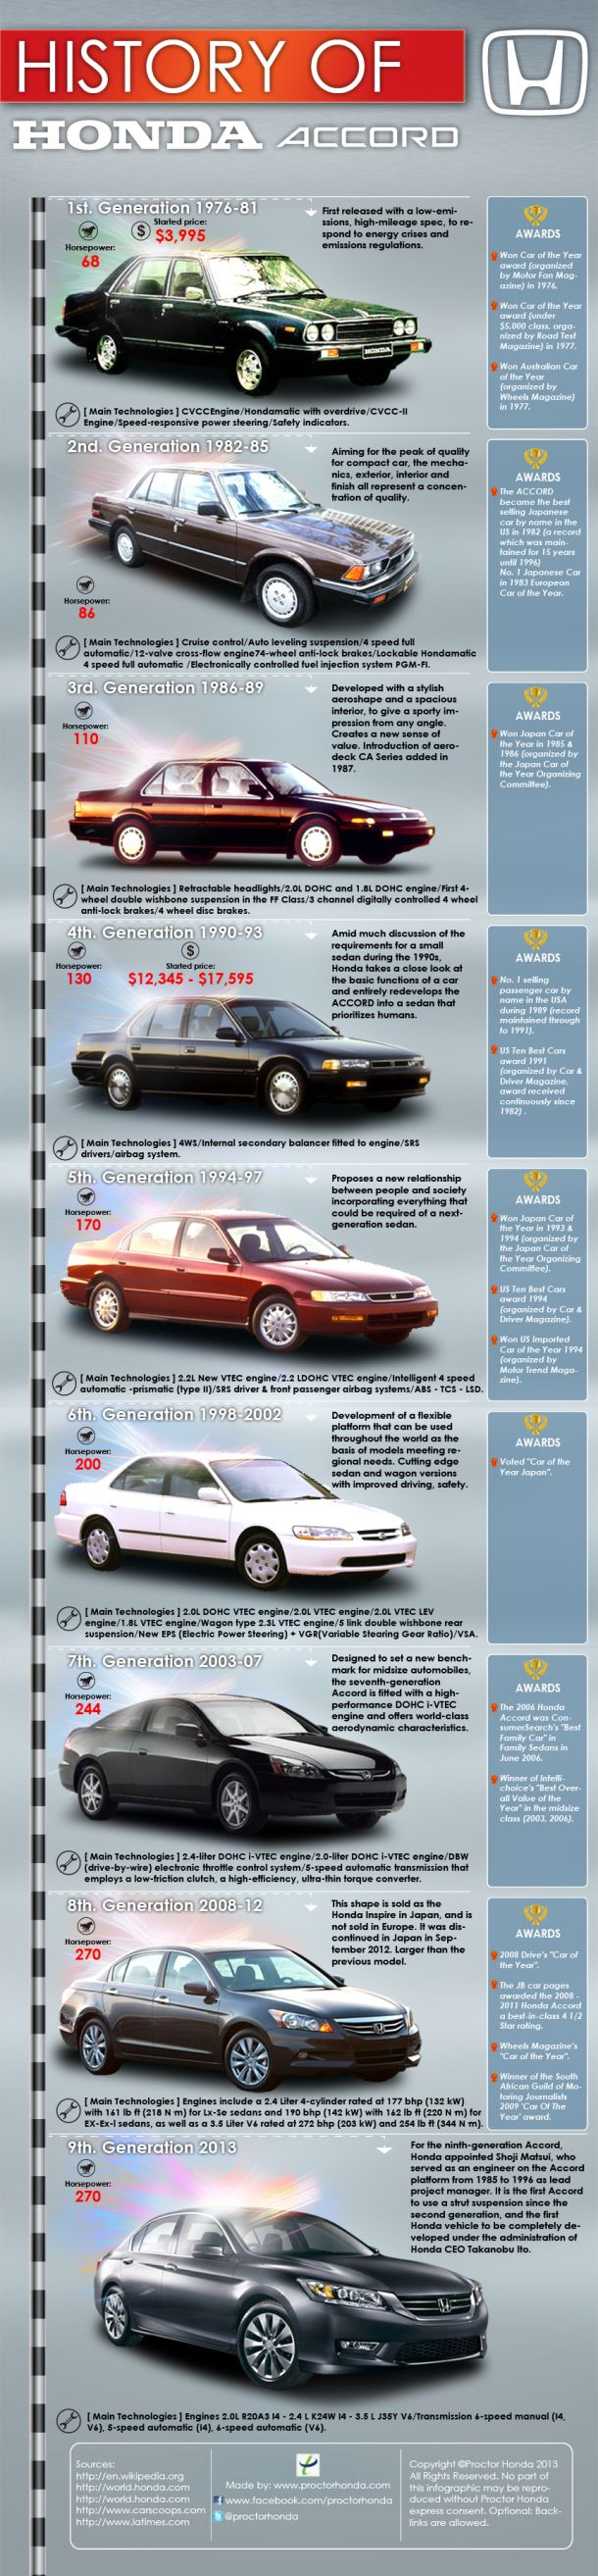 2016 honda accord History of Honda Accord [INFOGRAPHIC] #Honda #Accord http://2015motorcycles.com/